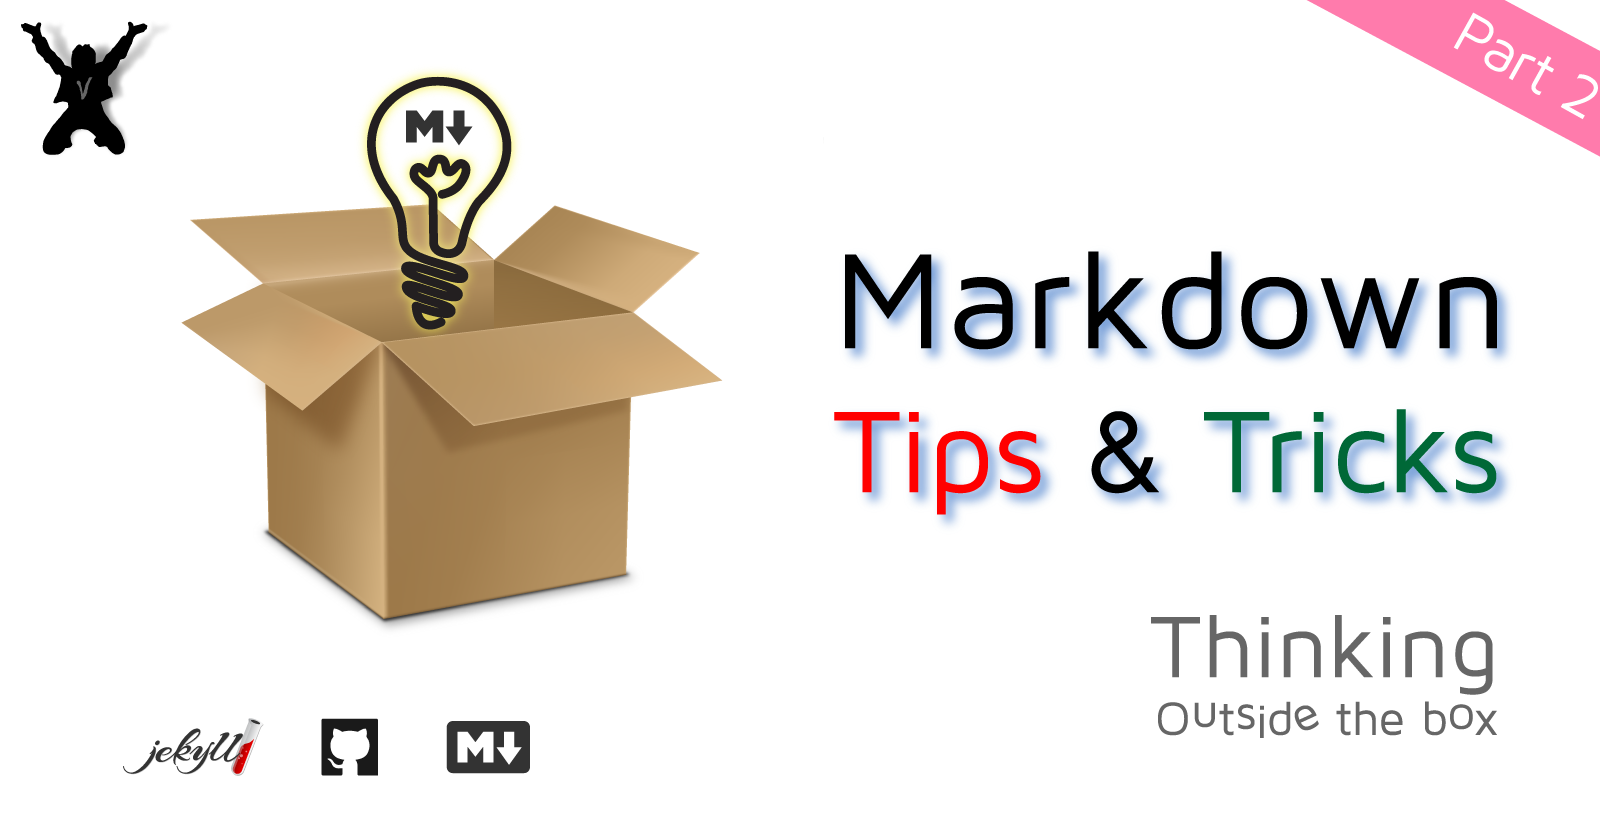 Markdown Tips & Tricks - Part 2